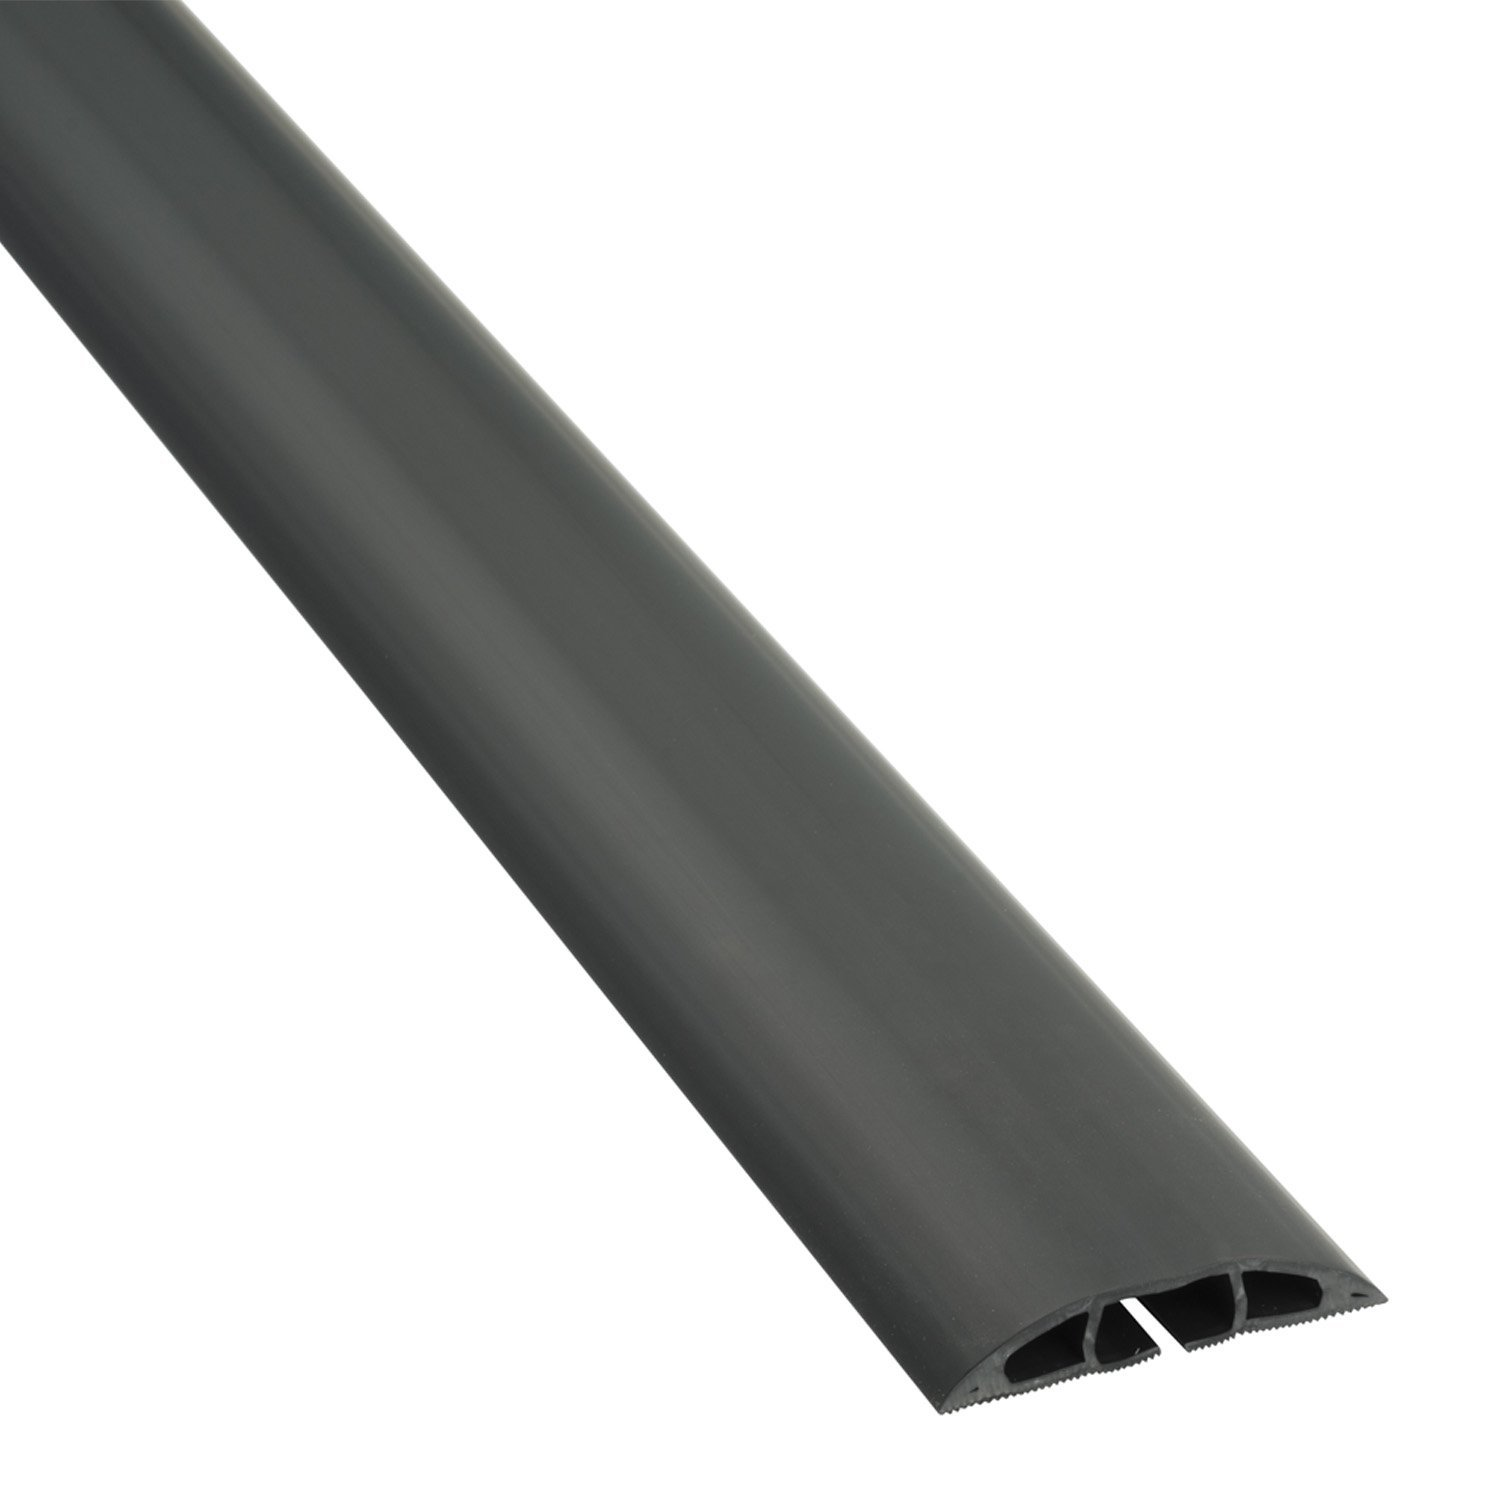 Cable Tidies D-Line Light Duty Cable Cover 1.8m Black